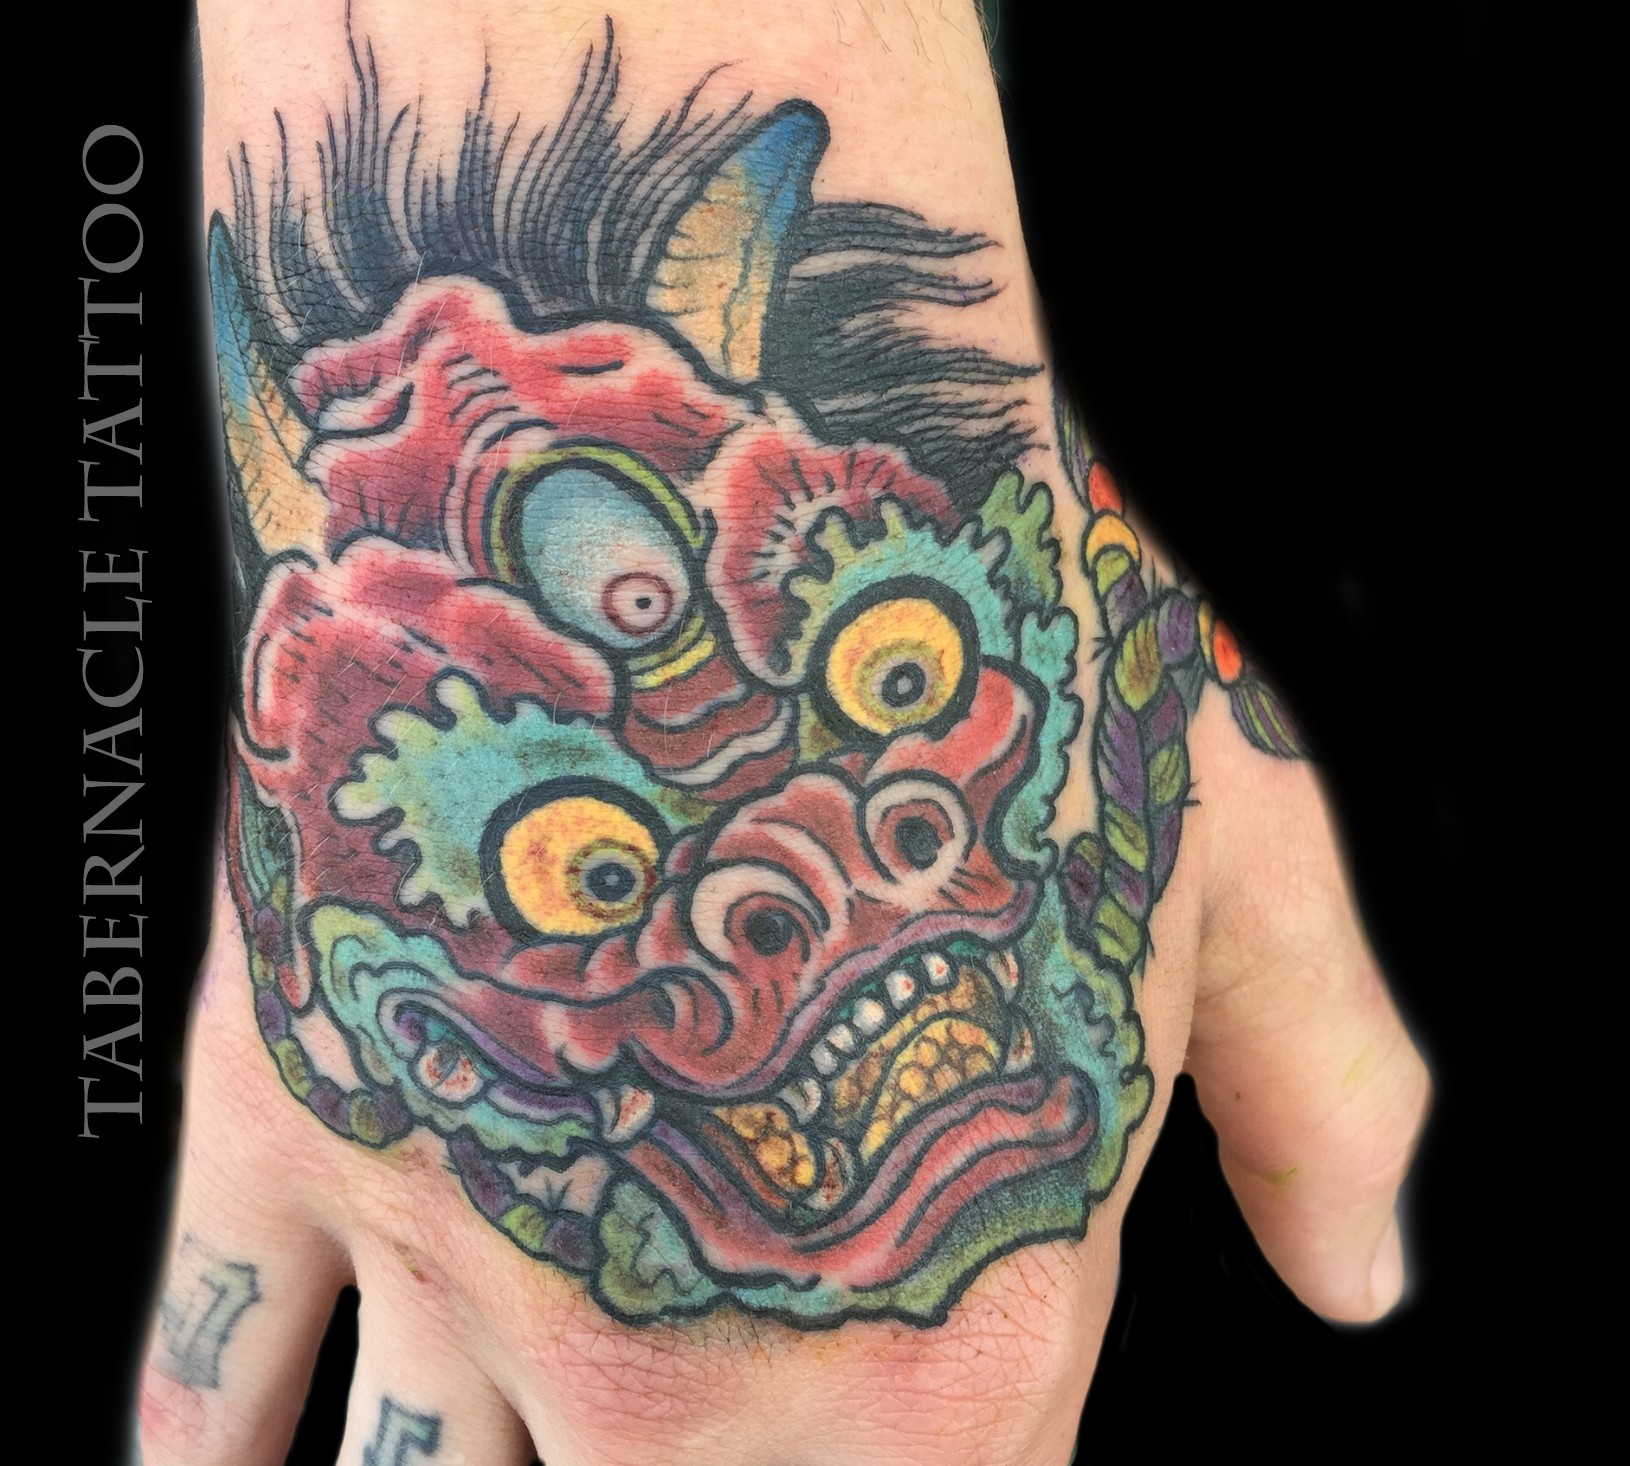 Hand tattoo of oni